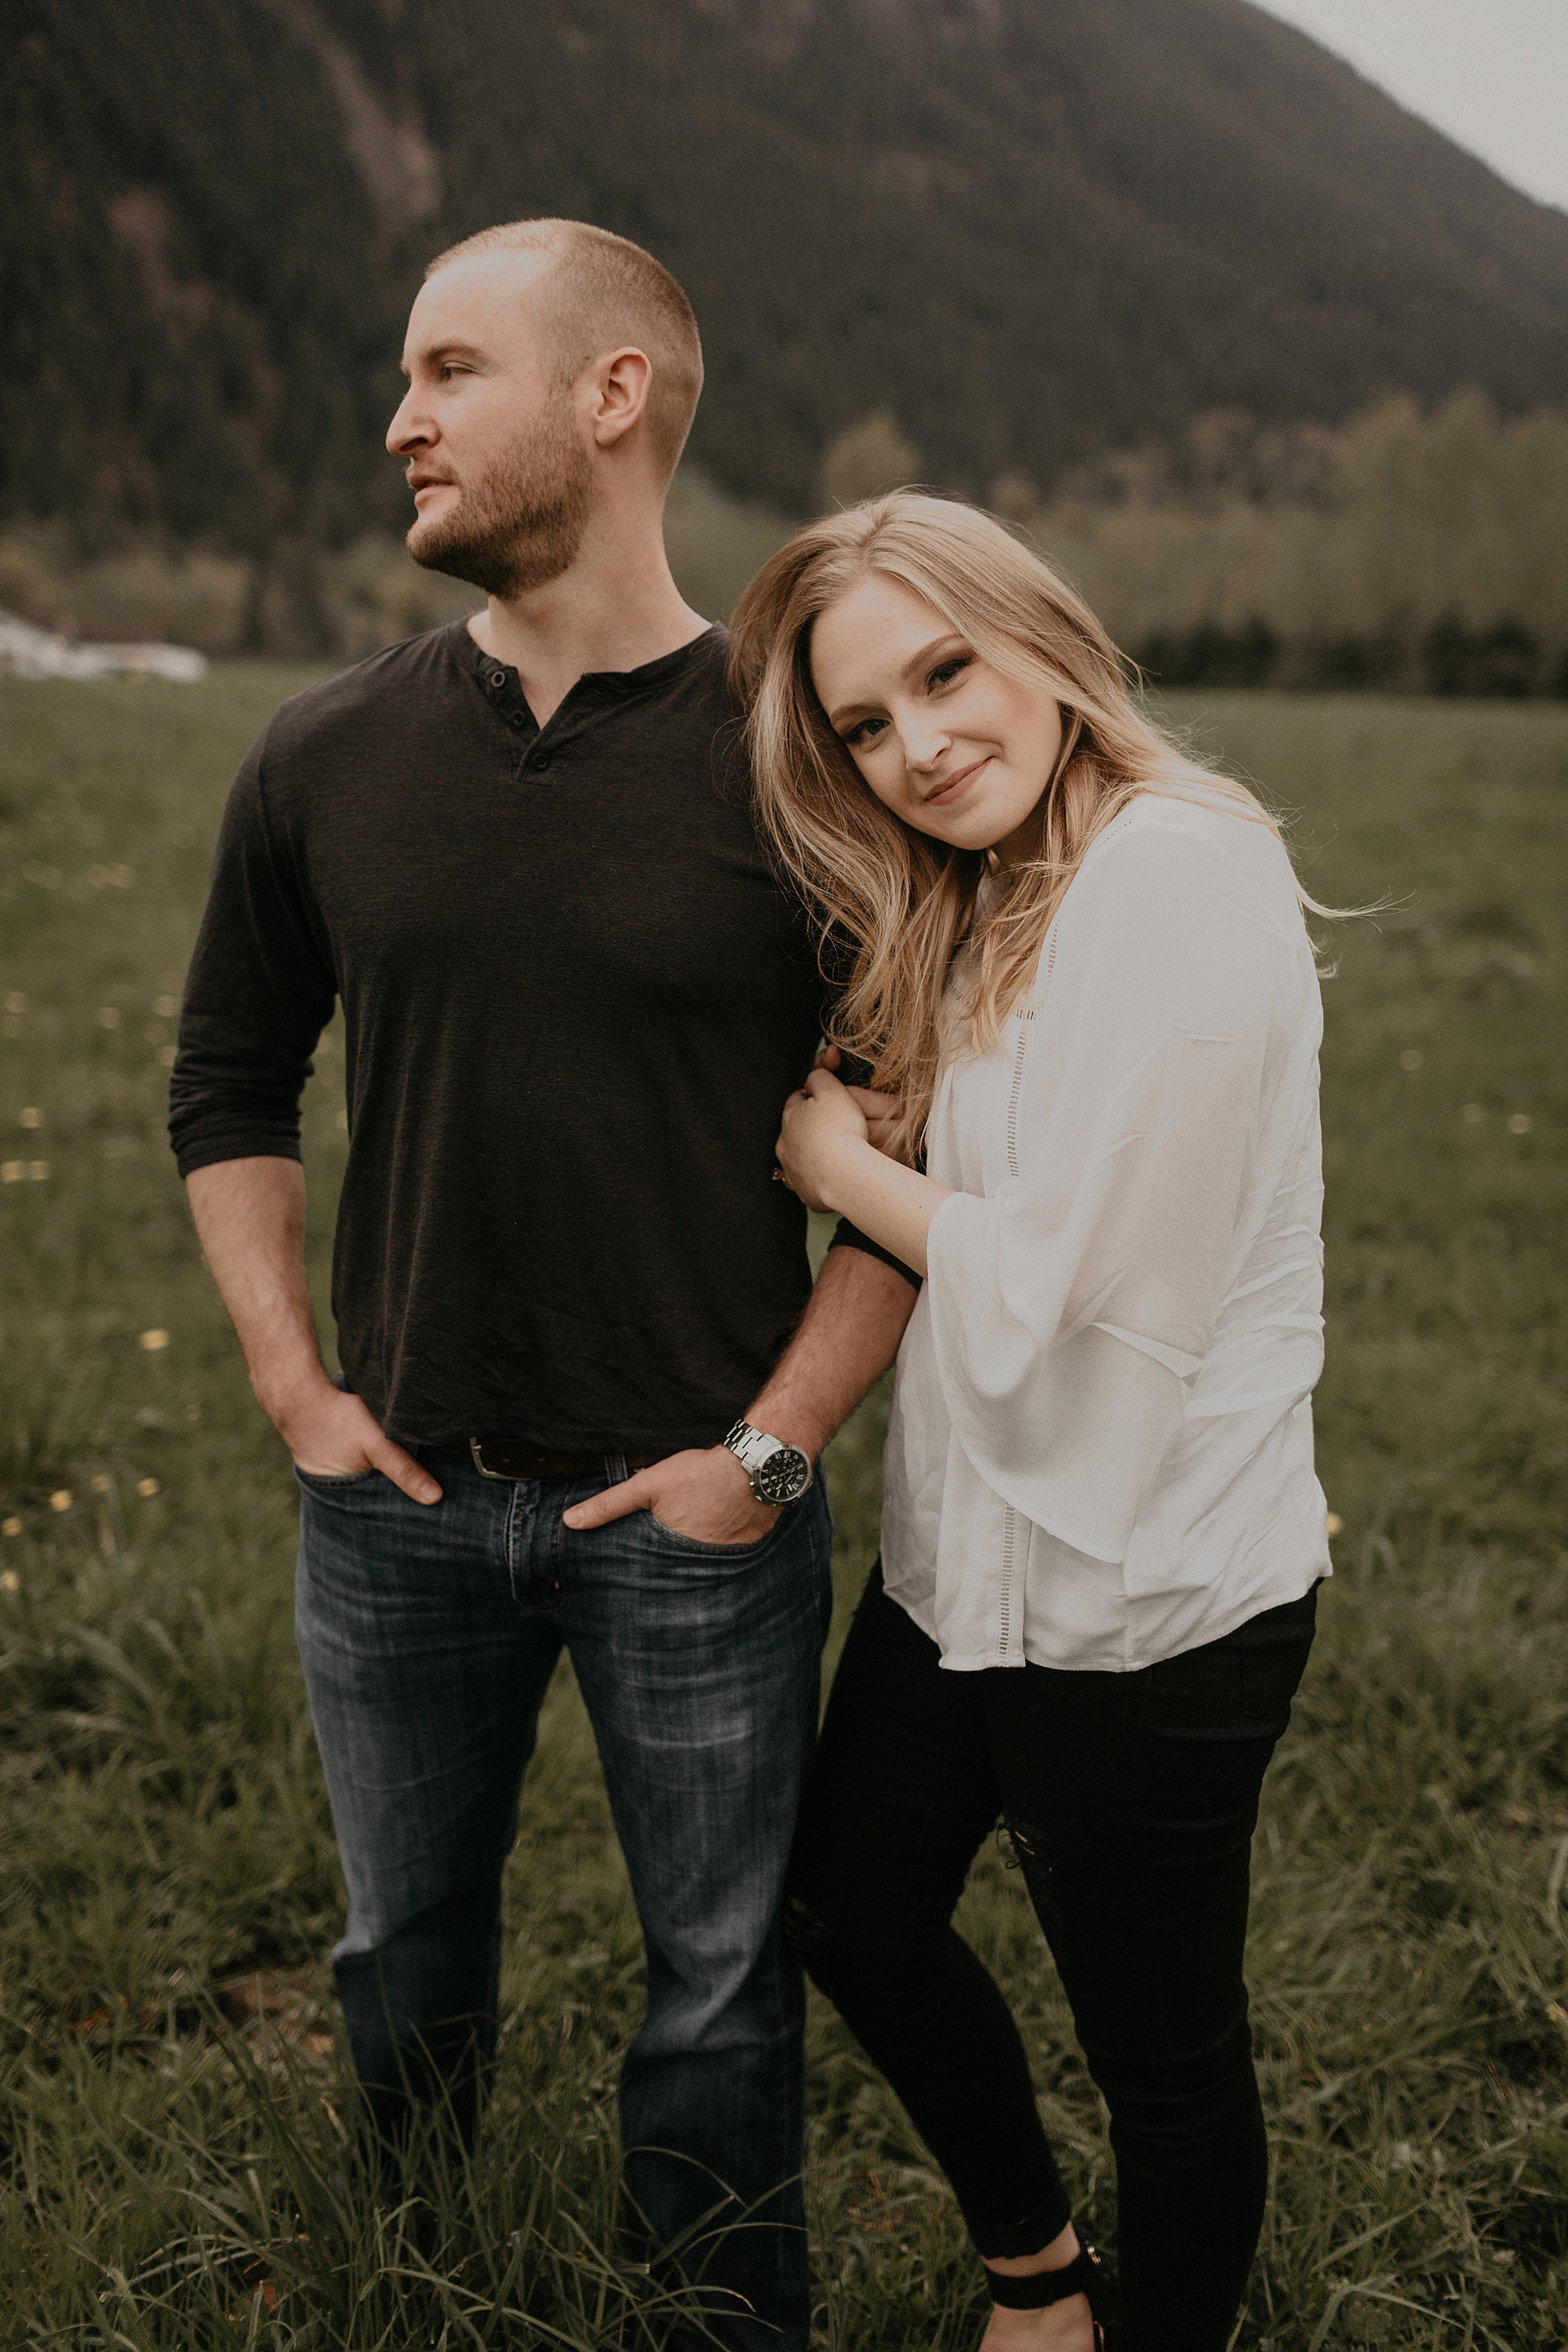 samantha_mcfarlen_bellingham_washington_engagement_photography_seattle_wedding_photographer_0273.jpg